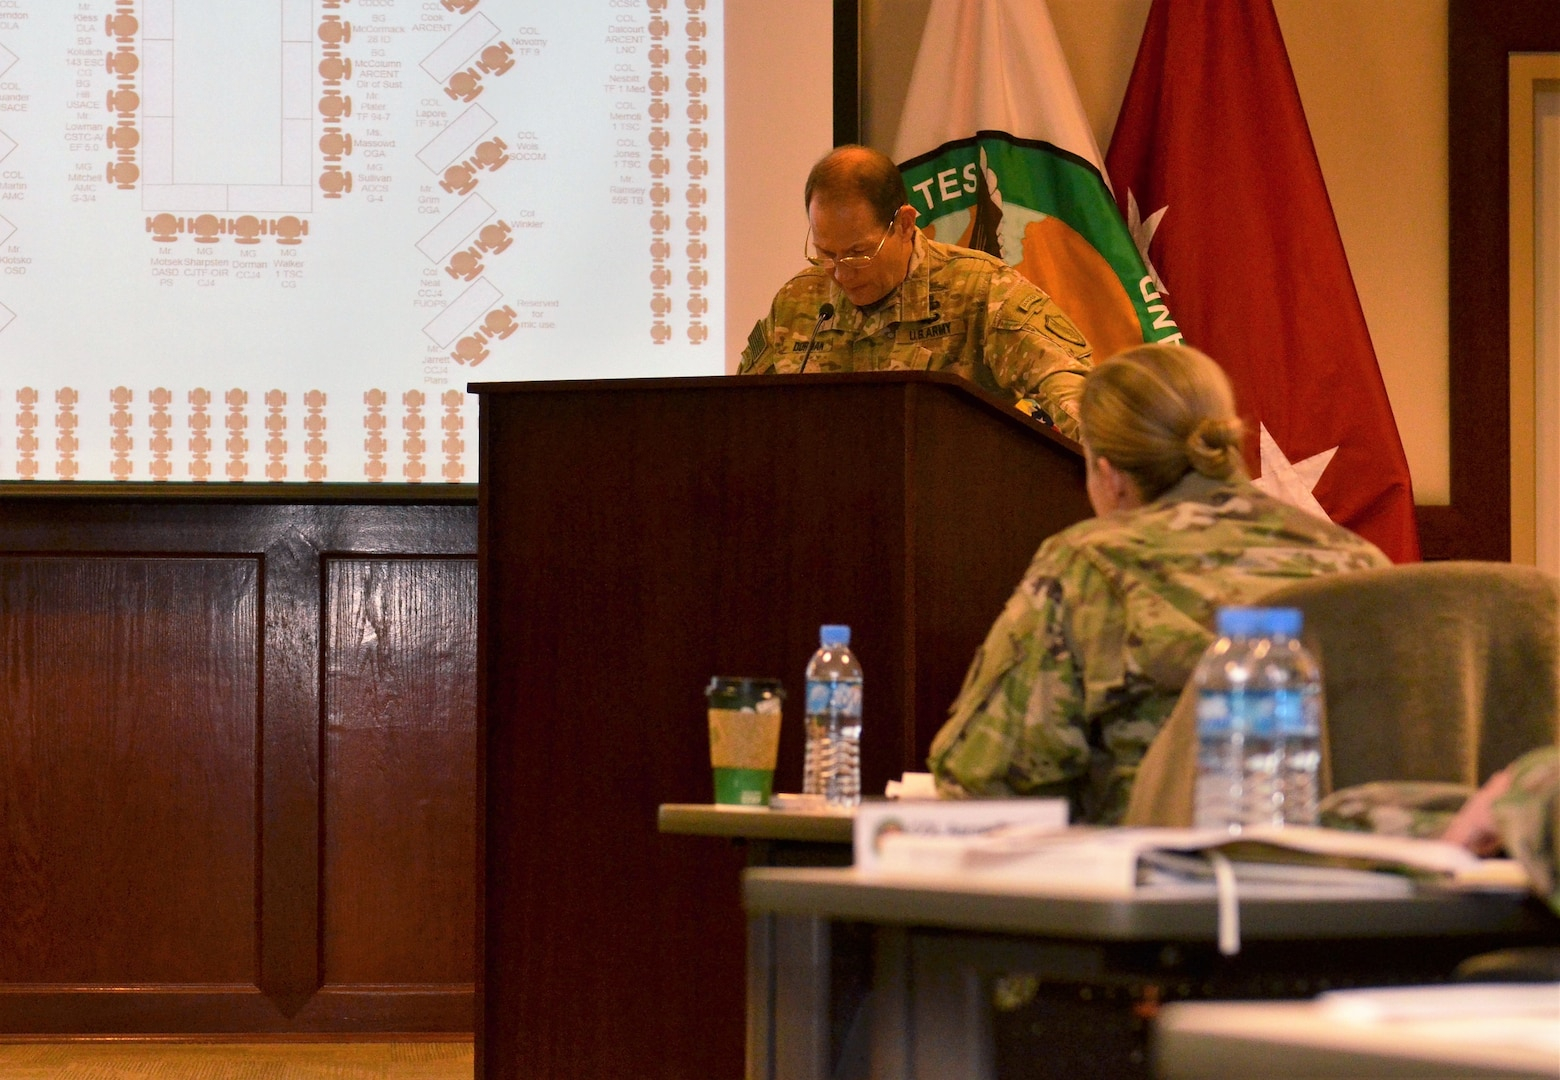 U.S. Army Major General Edward Dorman, Director of Logistics and Engineering for U.S. Central Command, addresses members of the Joint Logistics Coordination Board during a conference at Al Udeid Air Base, Qatar on 9 May, 2018. Dorman urged participants to stay focused on sustaining the fight and setting the theater as a means to support military operations. (U.S. Air Force photo by Senior Airman Patrick Wyatt)